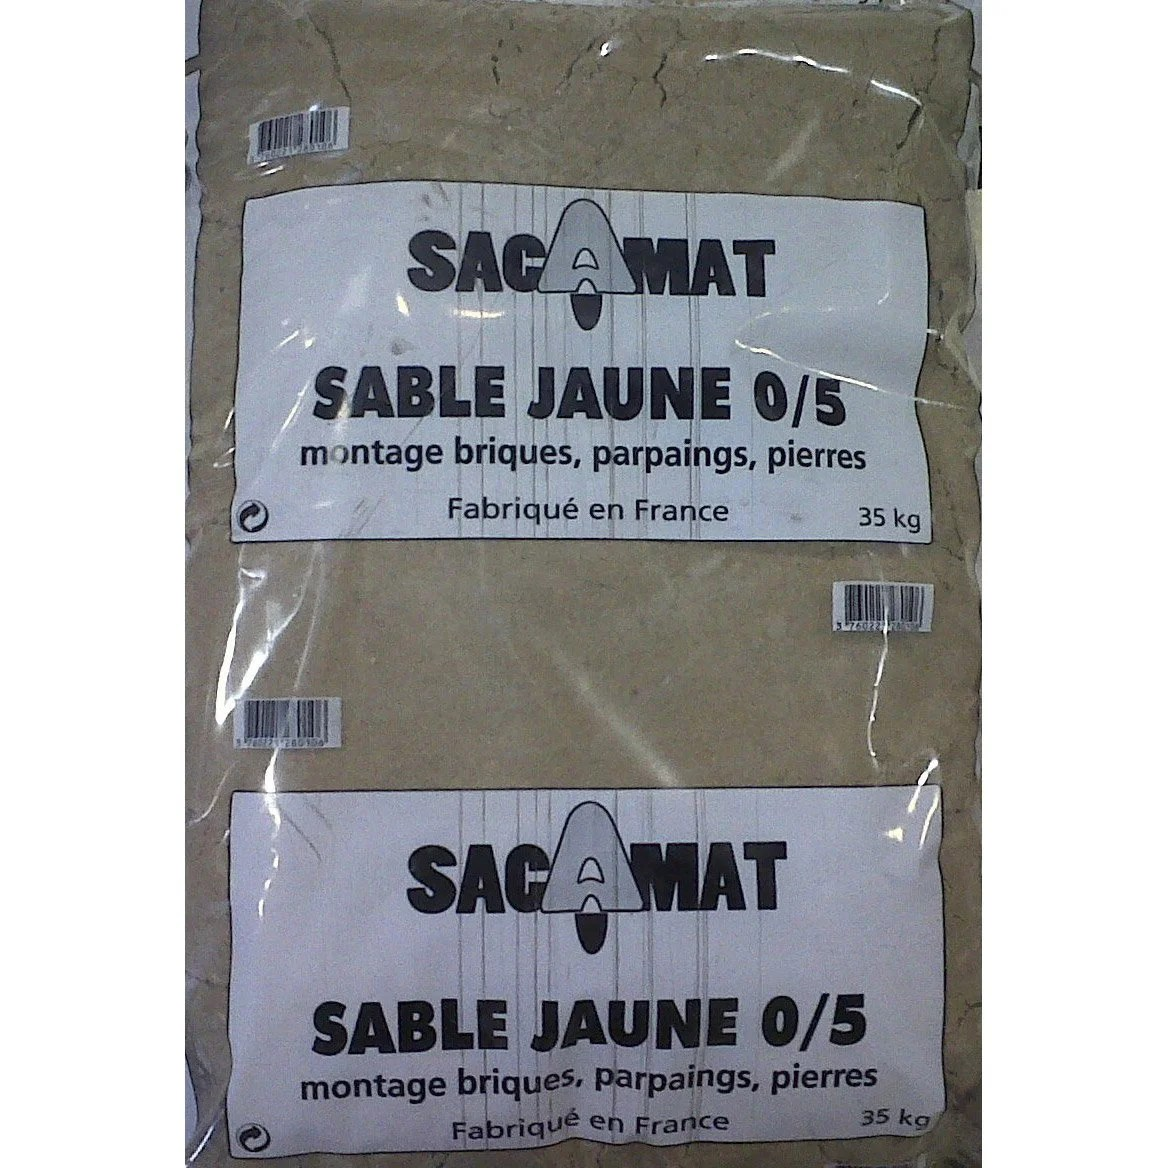 Sable Leroy Merlin Sac Sac De Sable Jaune 0/5, 35 Kg | Leroy Merlin